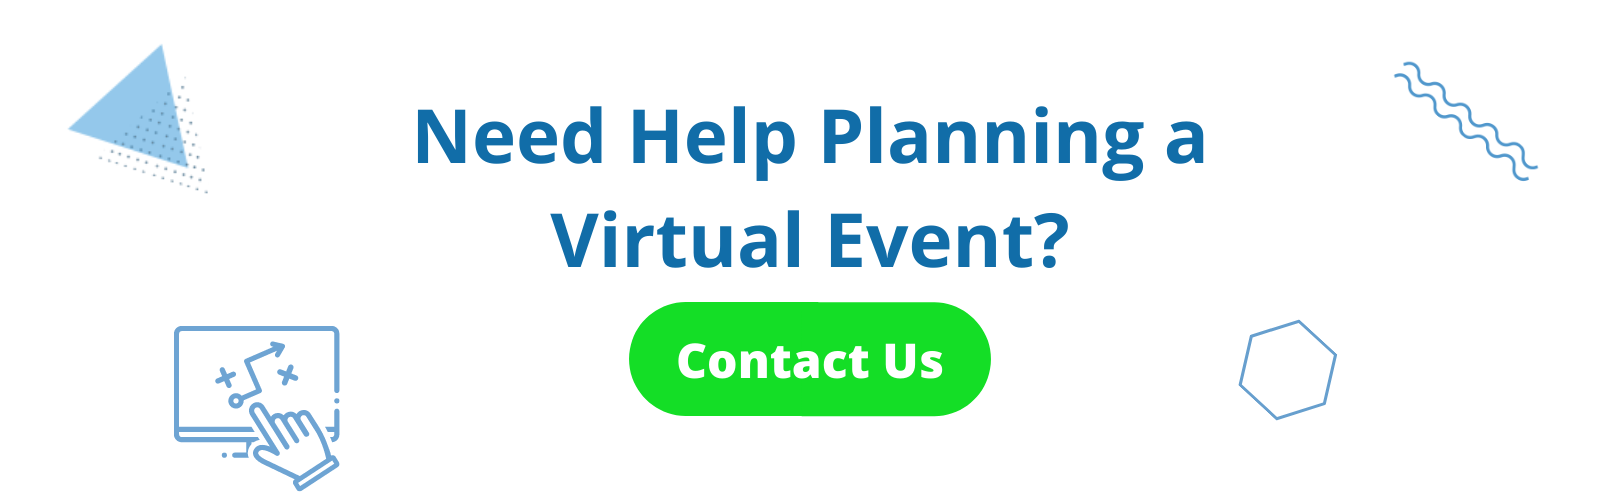 Get help planning a virtual event